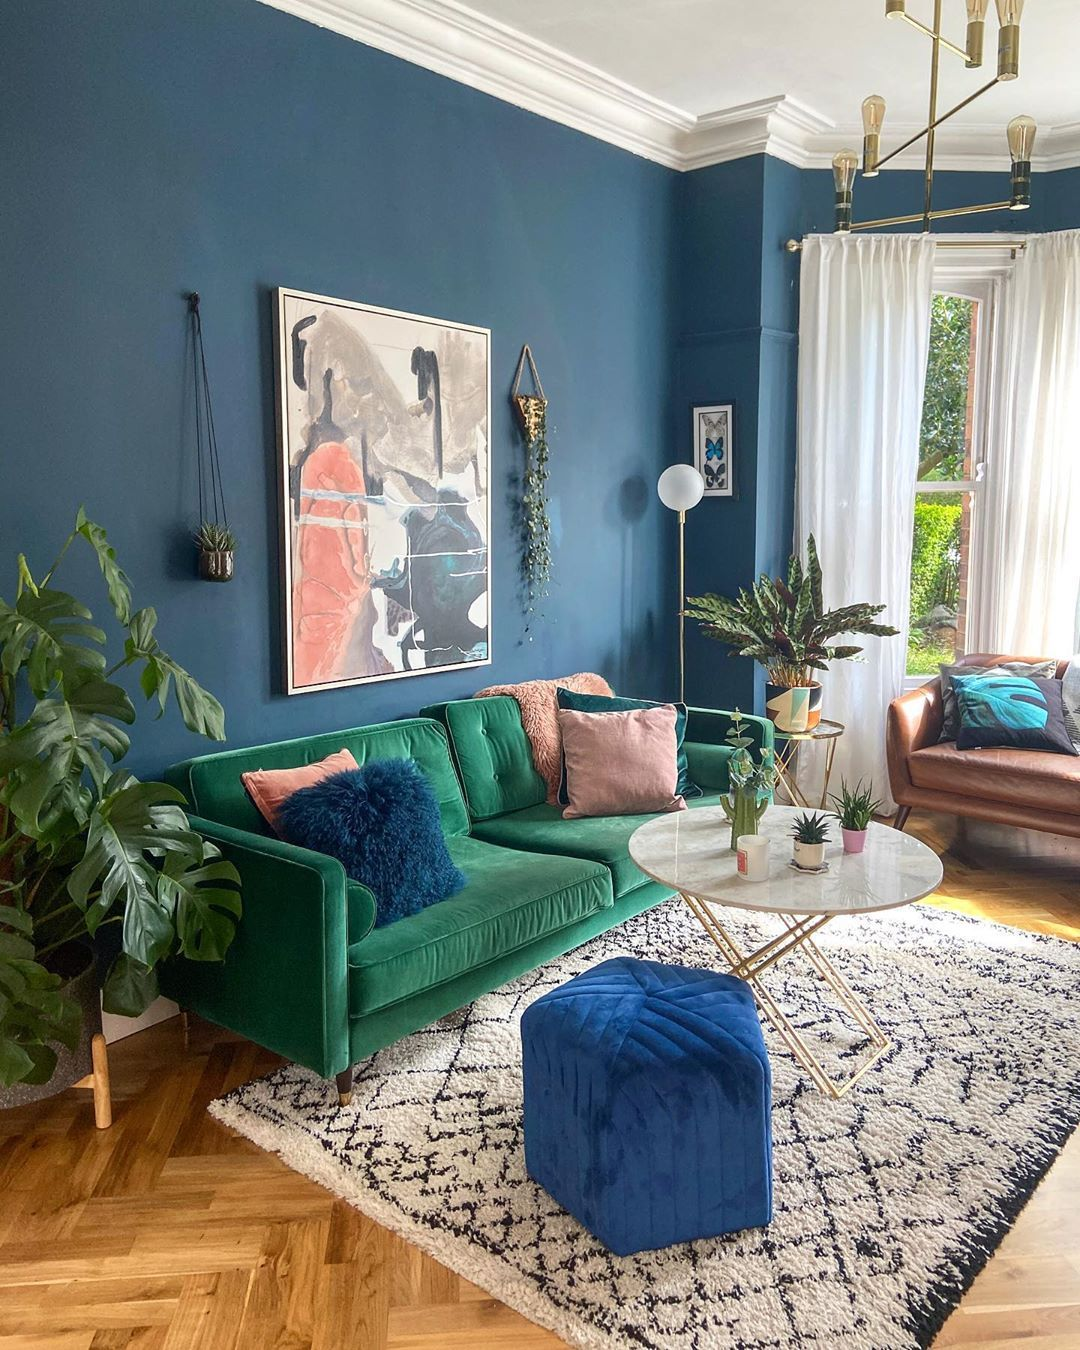 laura magee On Instagram Evening Folks How S It Going This Evening I Have Spent The Green Sofa Living Room Blue Living Room Decor Blue And Green Living Room